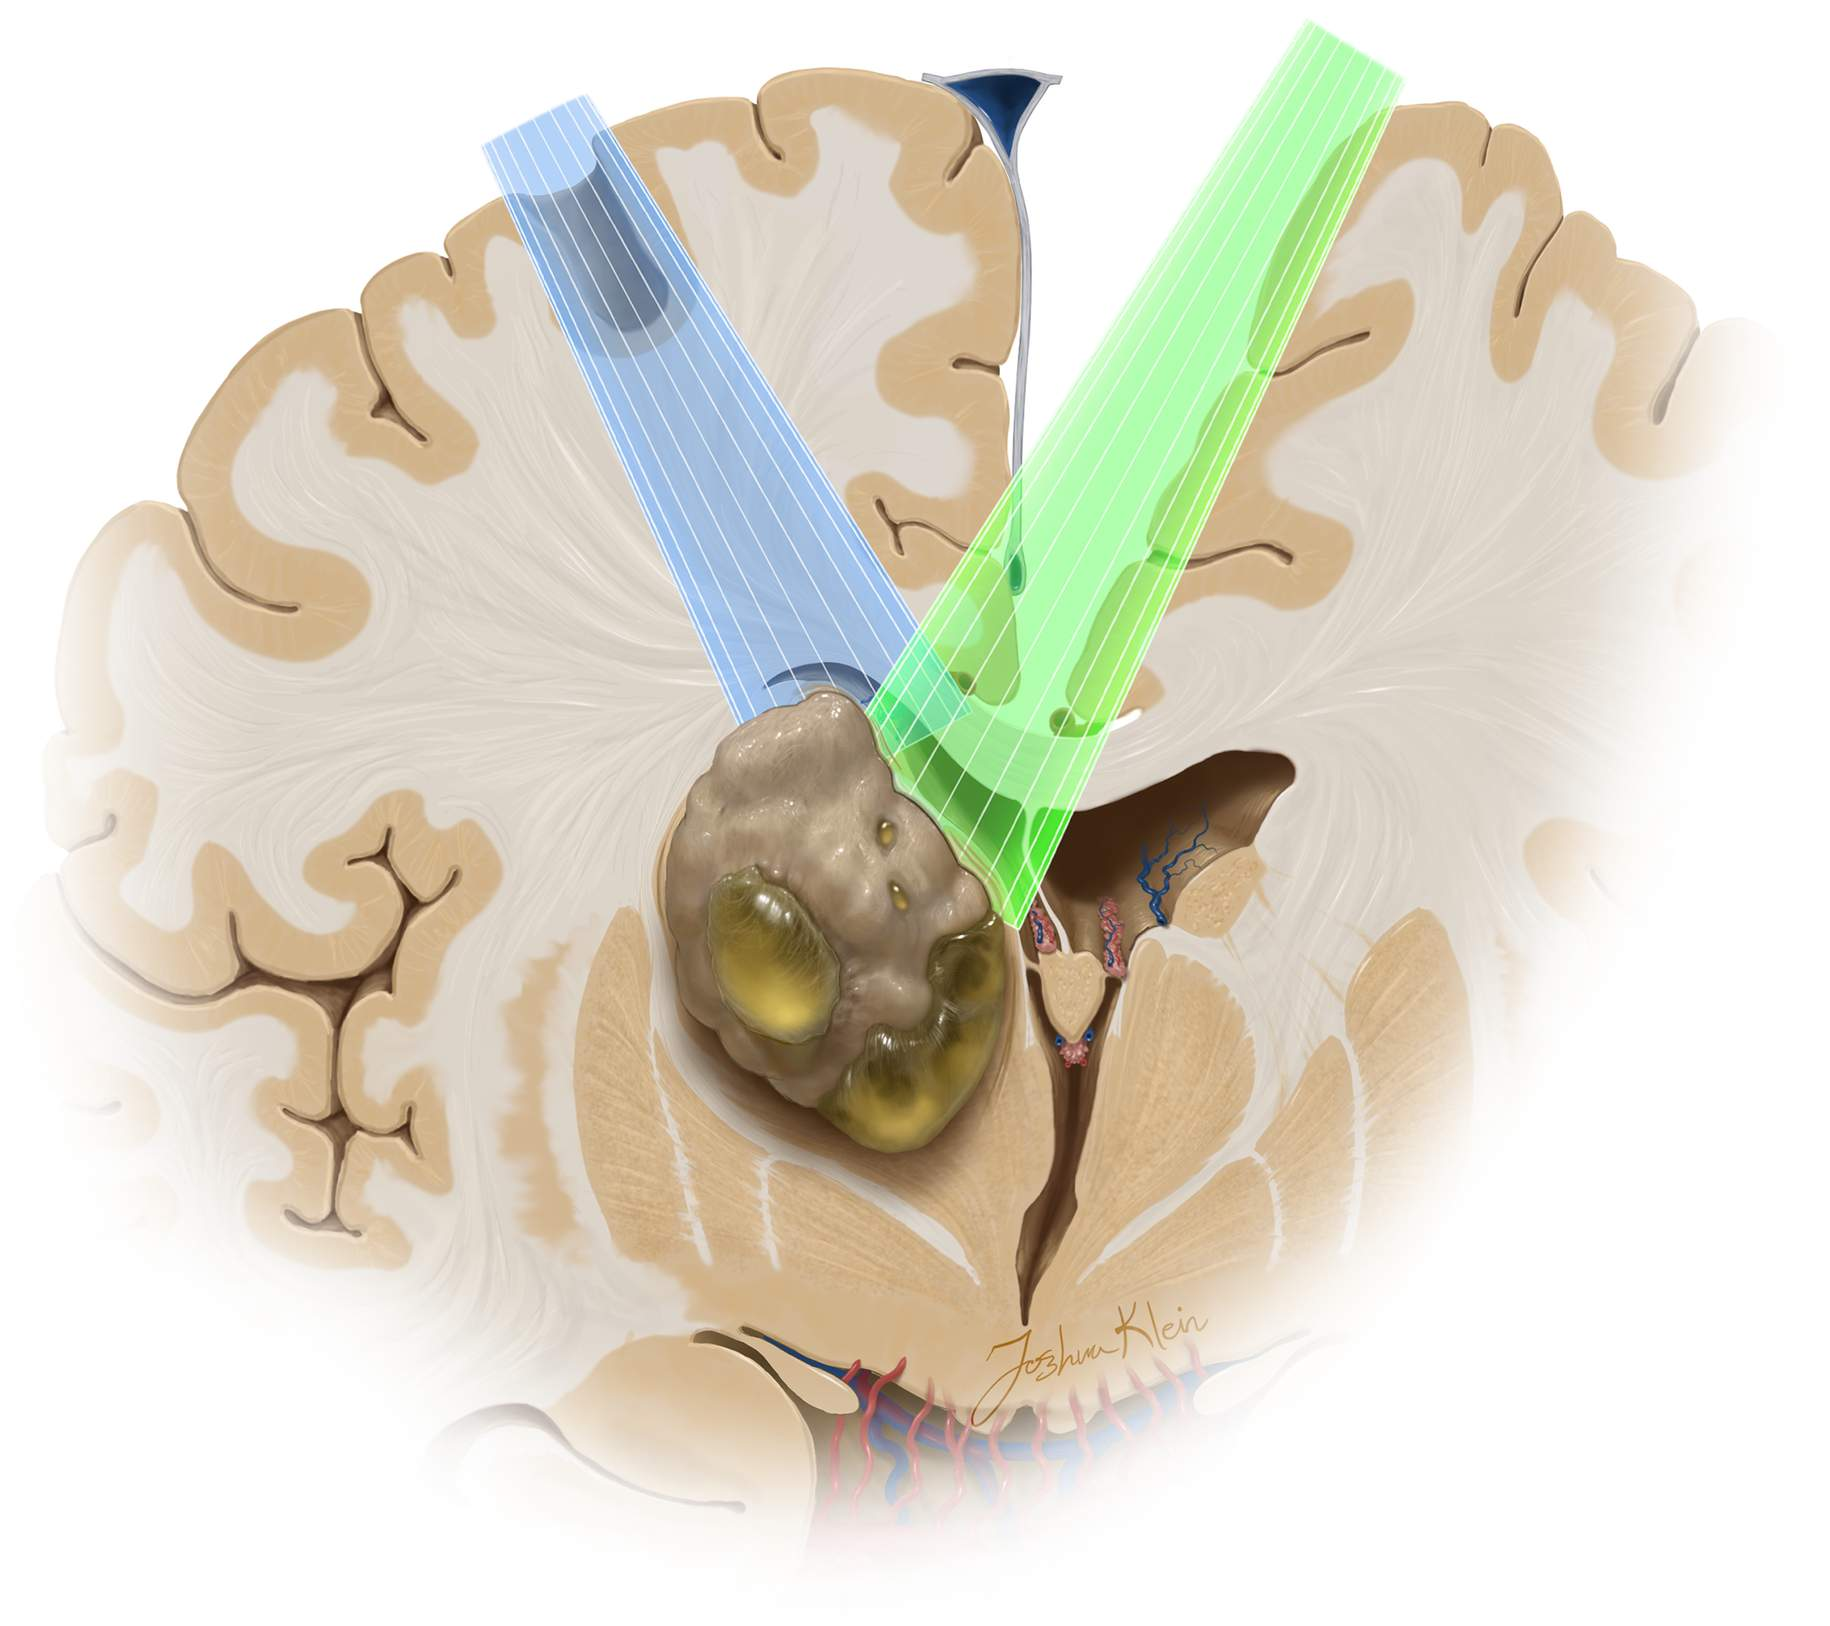 Figure 15: Use of the contralateral transcallosal route is favorable for superior and lateral thalamic tumors. The expanded advantages of the cross-court trajectory (green) over the ipsilateral corridor (blue) are apparent.